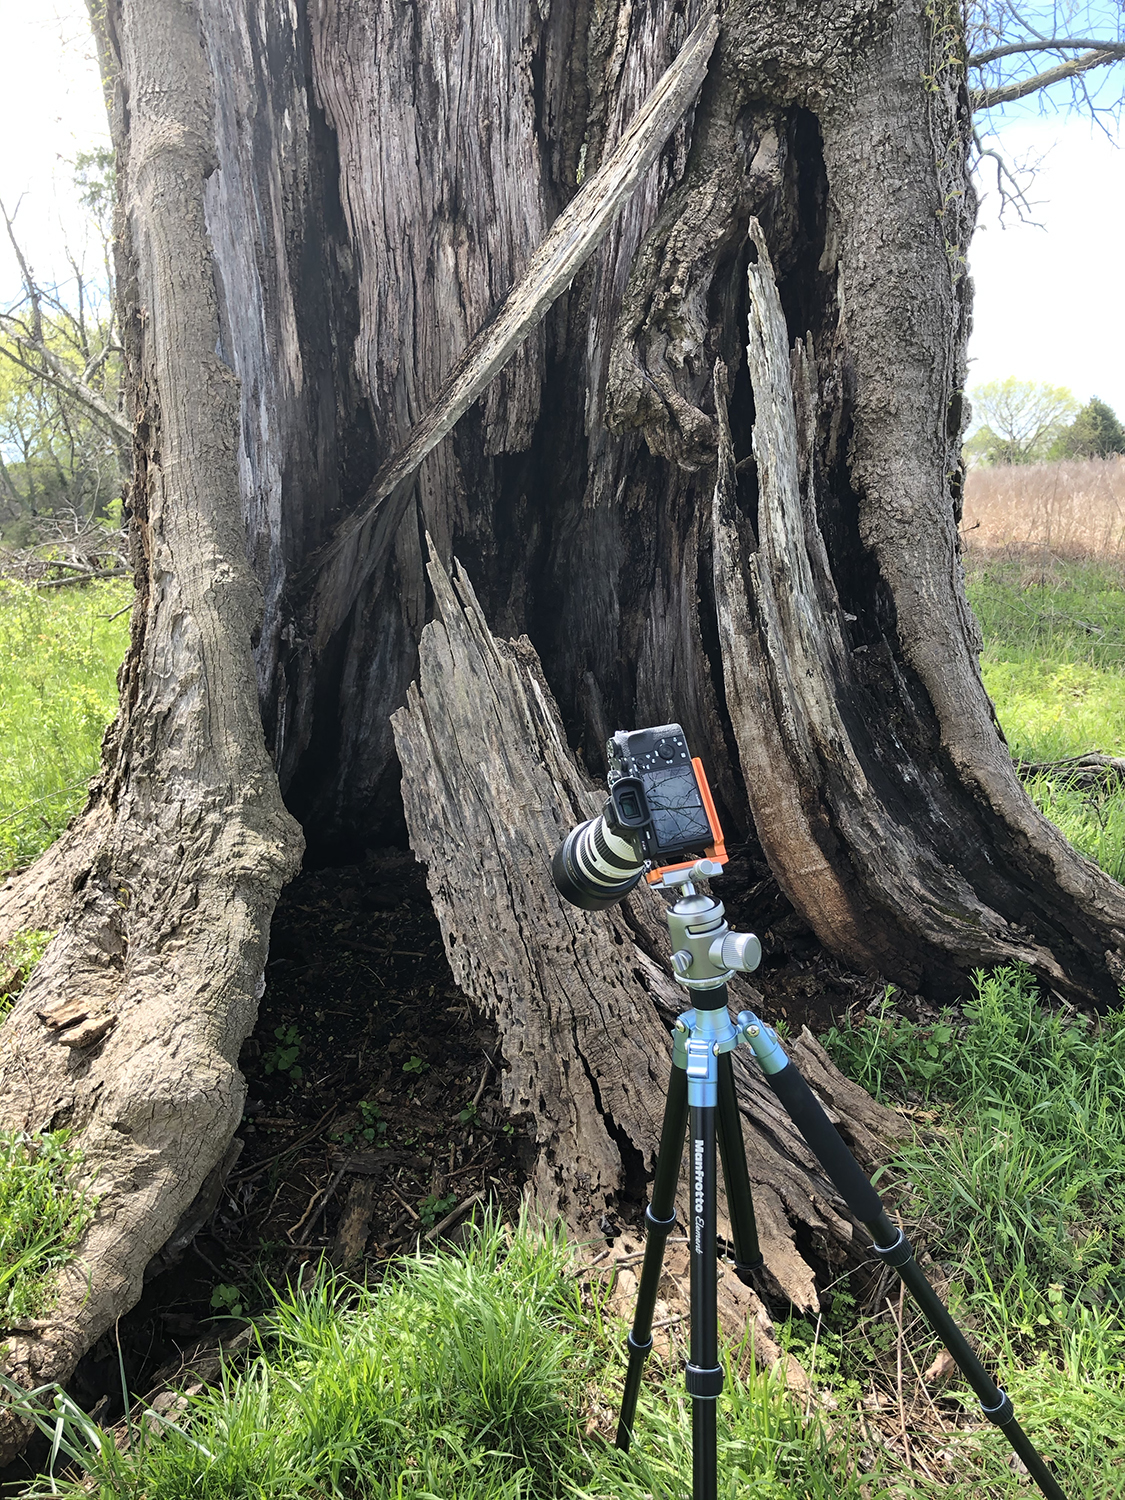 A giant old tree towers over the camera and tripod in this behind the scenes photograph by landscape photographer Keith Dotson.